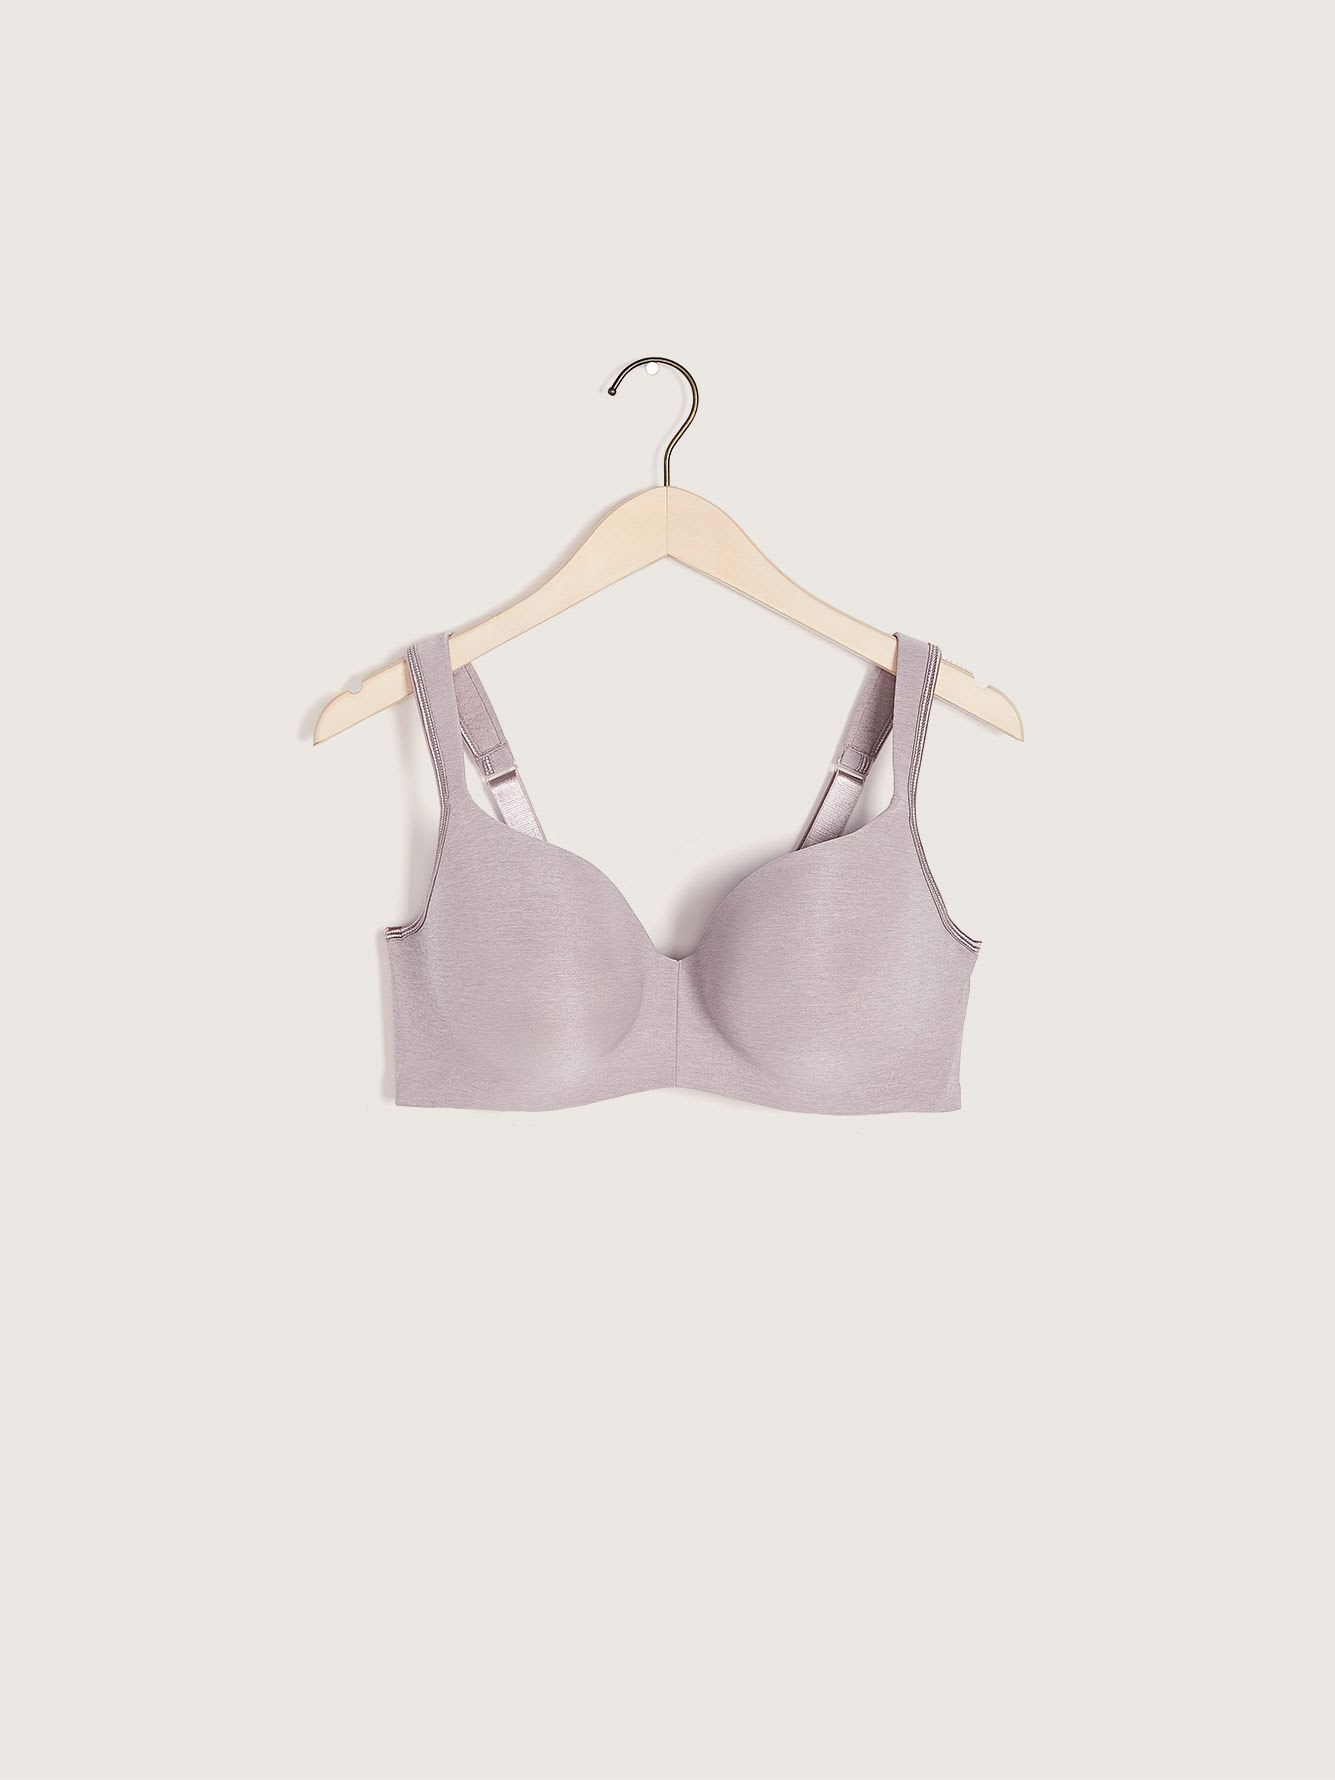 Padded Underwire T-Shirt Bra, G & H Cups